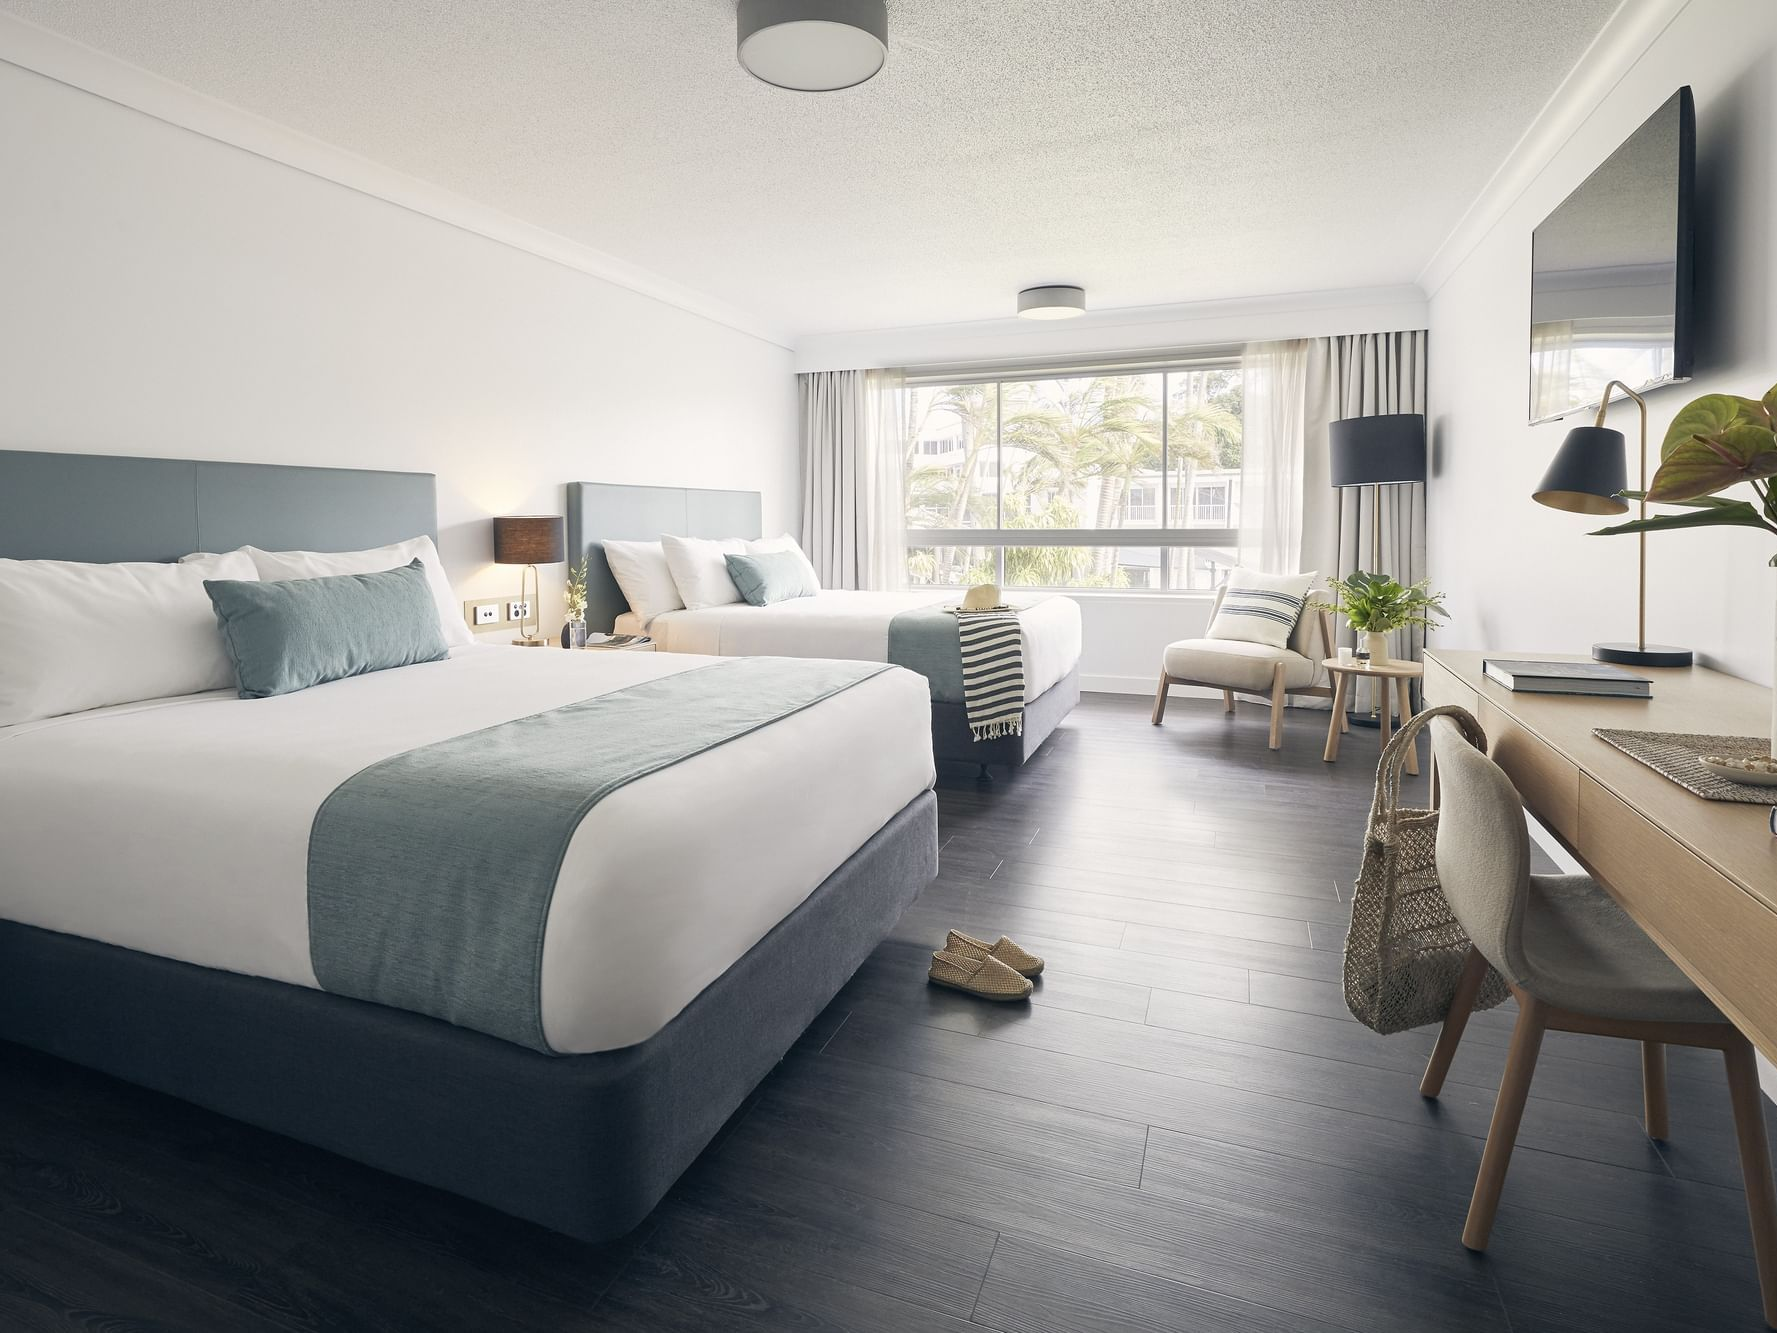 Two double beds in Resort room at Daydream Island Resort